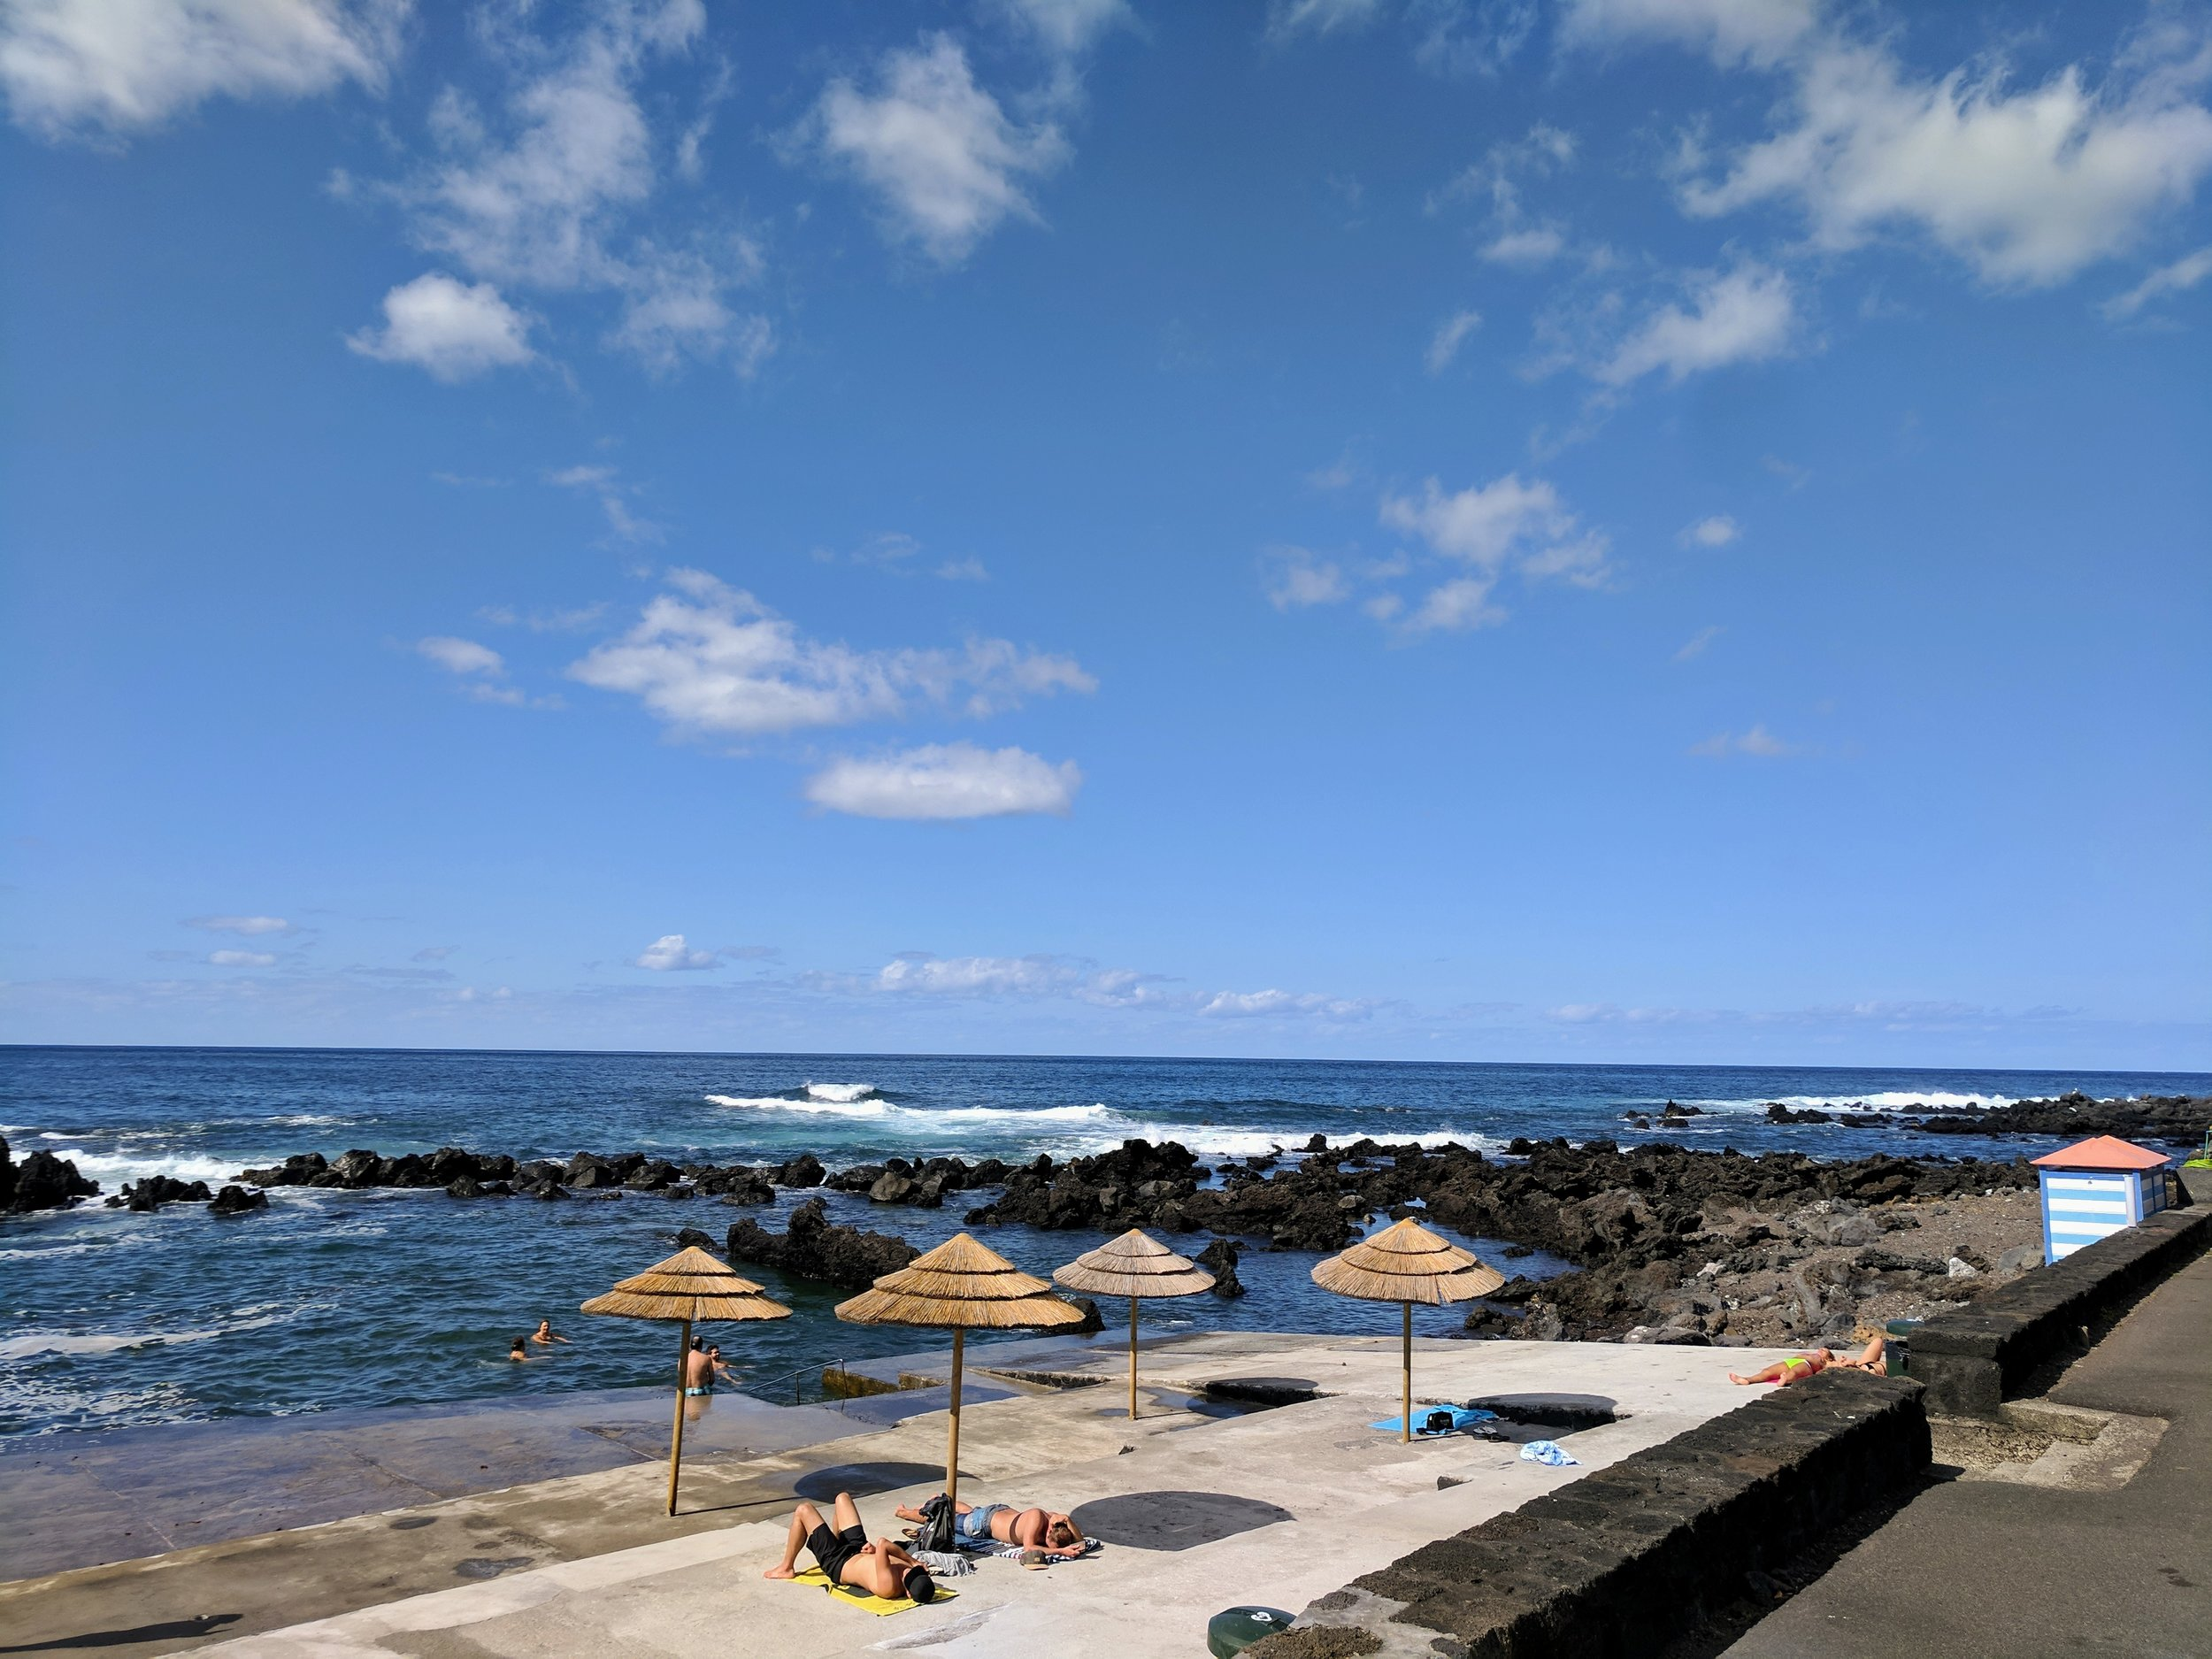 These little public beaches were along the eintire coast of Pico!